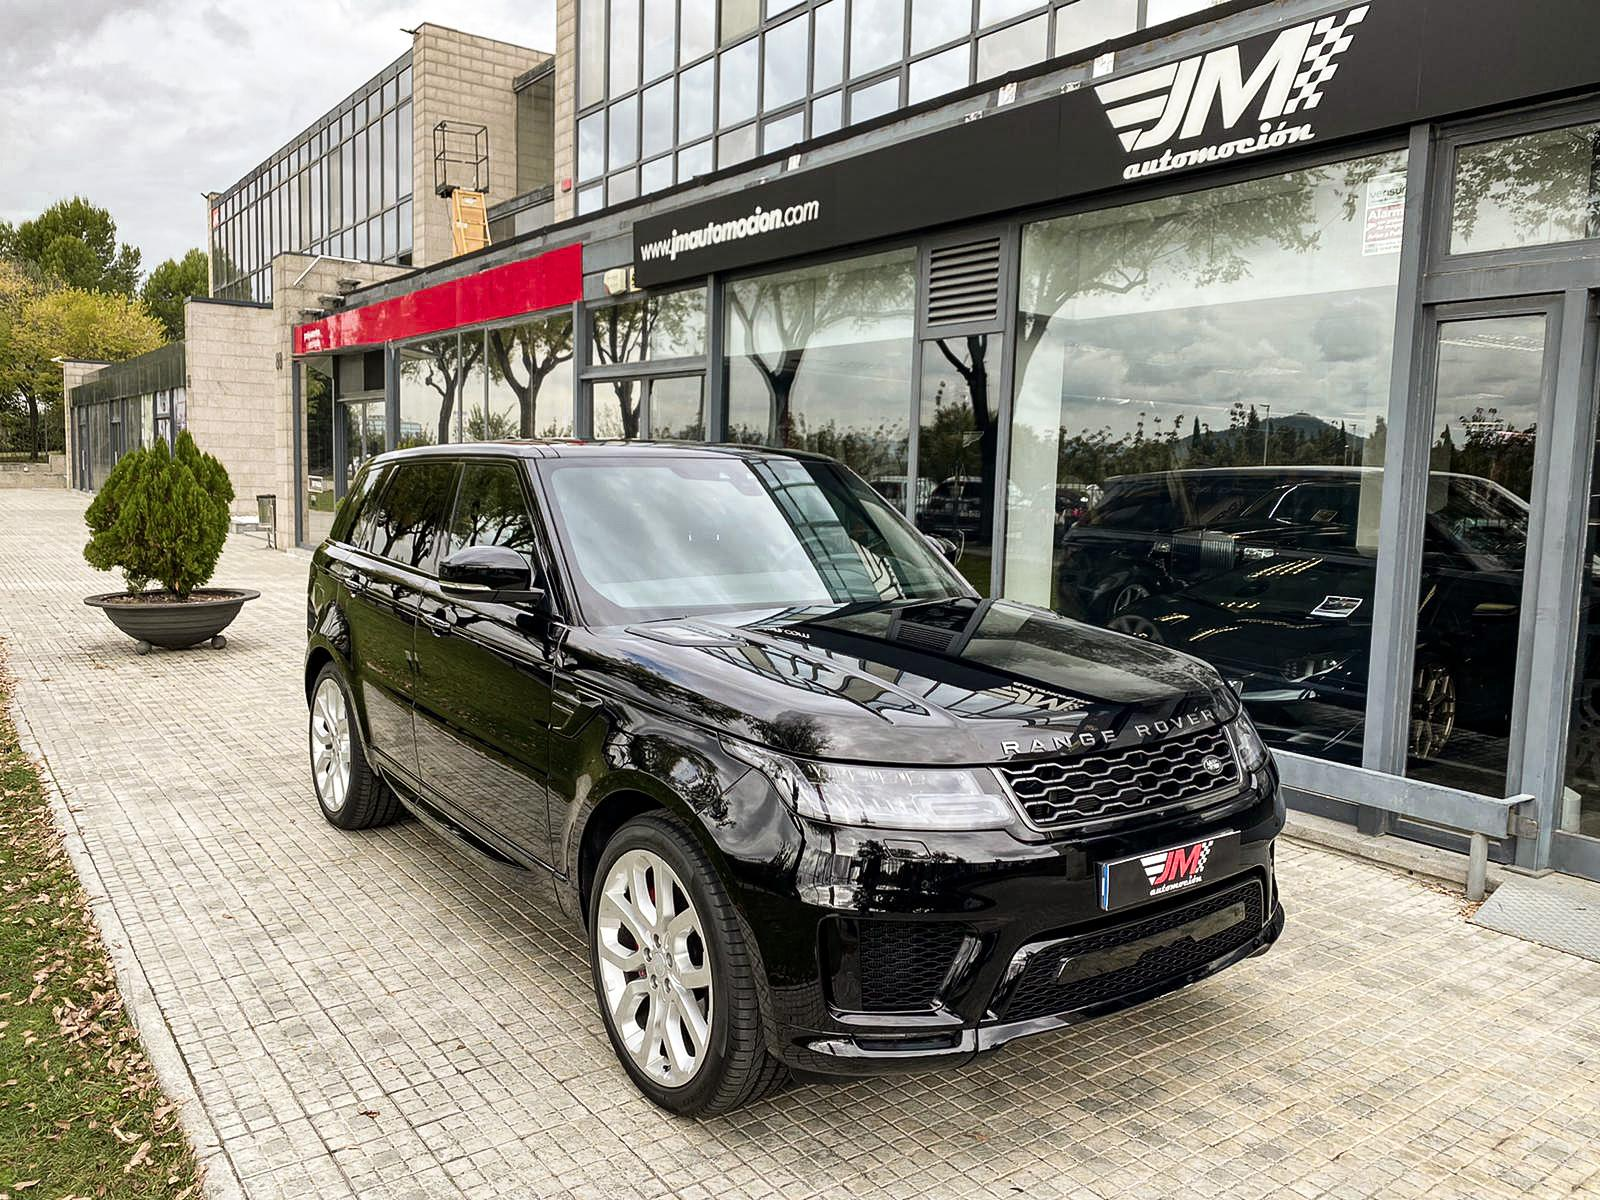 RANGE-ROVER SPORT SUPERCHARGED 5.0 V8 -FULL OPTIONS-